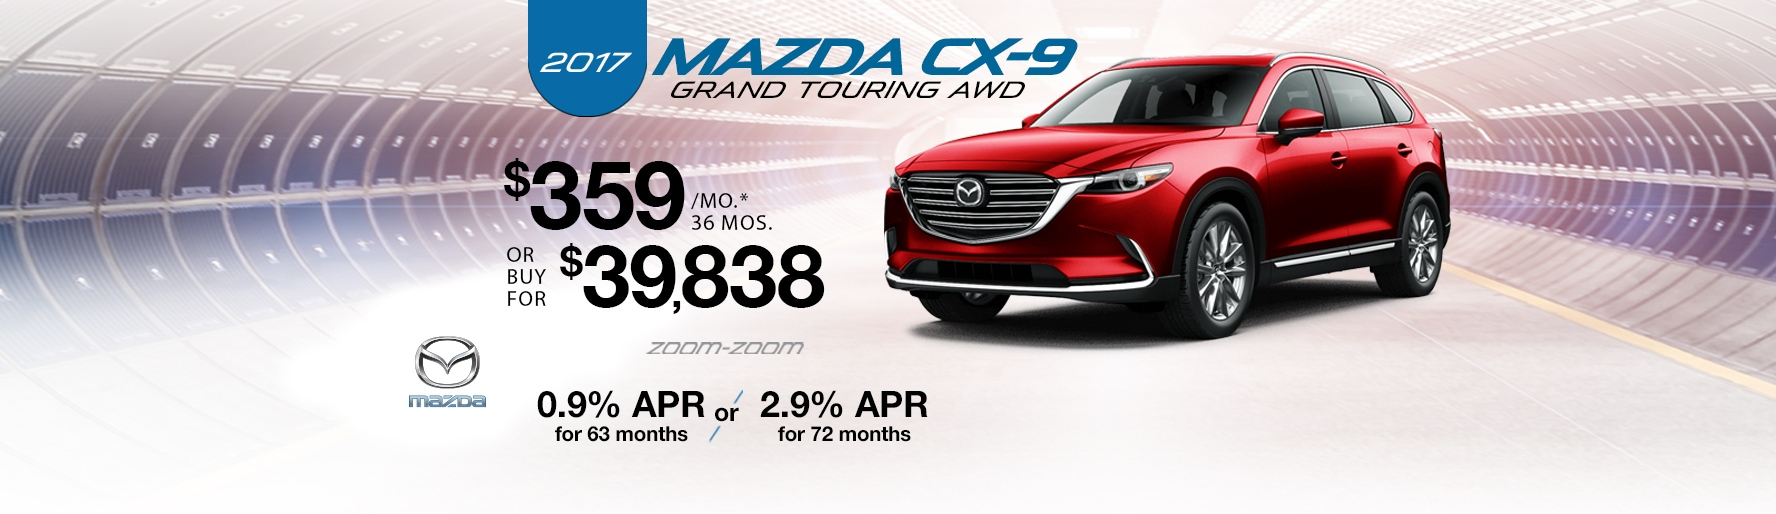 2017 Mazda CX-9 Grand Touring AWD Lease Special at Liberty Mazda